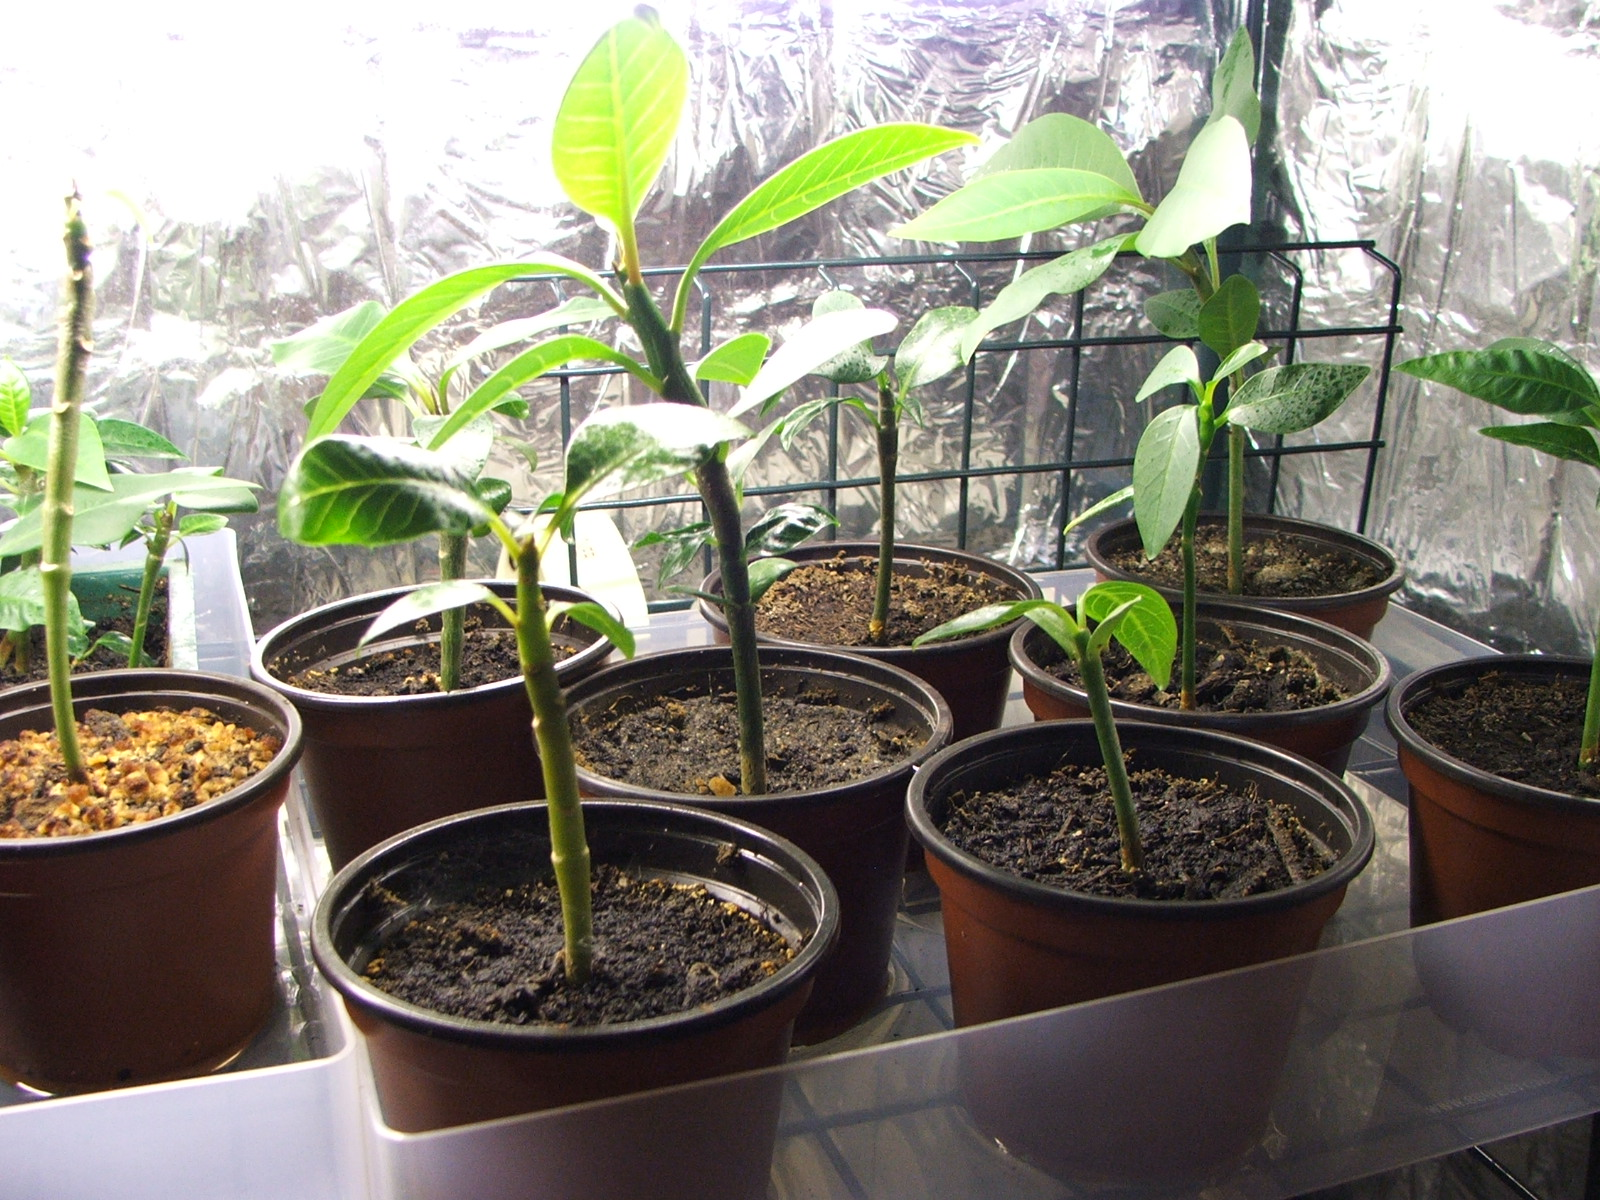 Seedlings growing strongly in the warmth and light of the nursery - Click to Enlarge